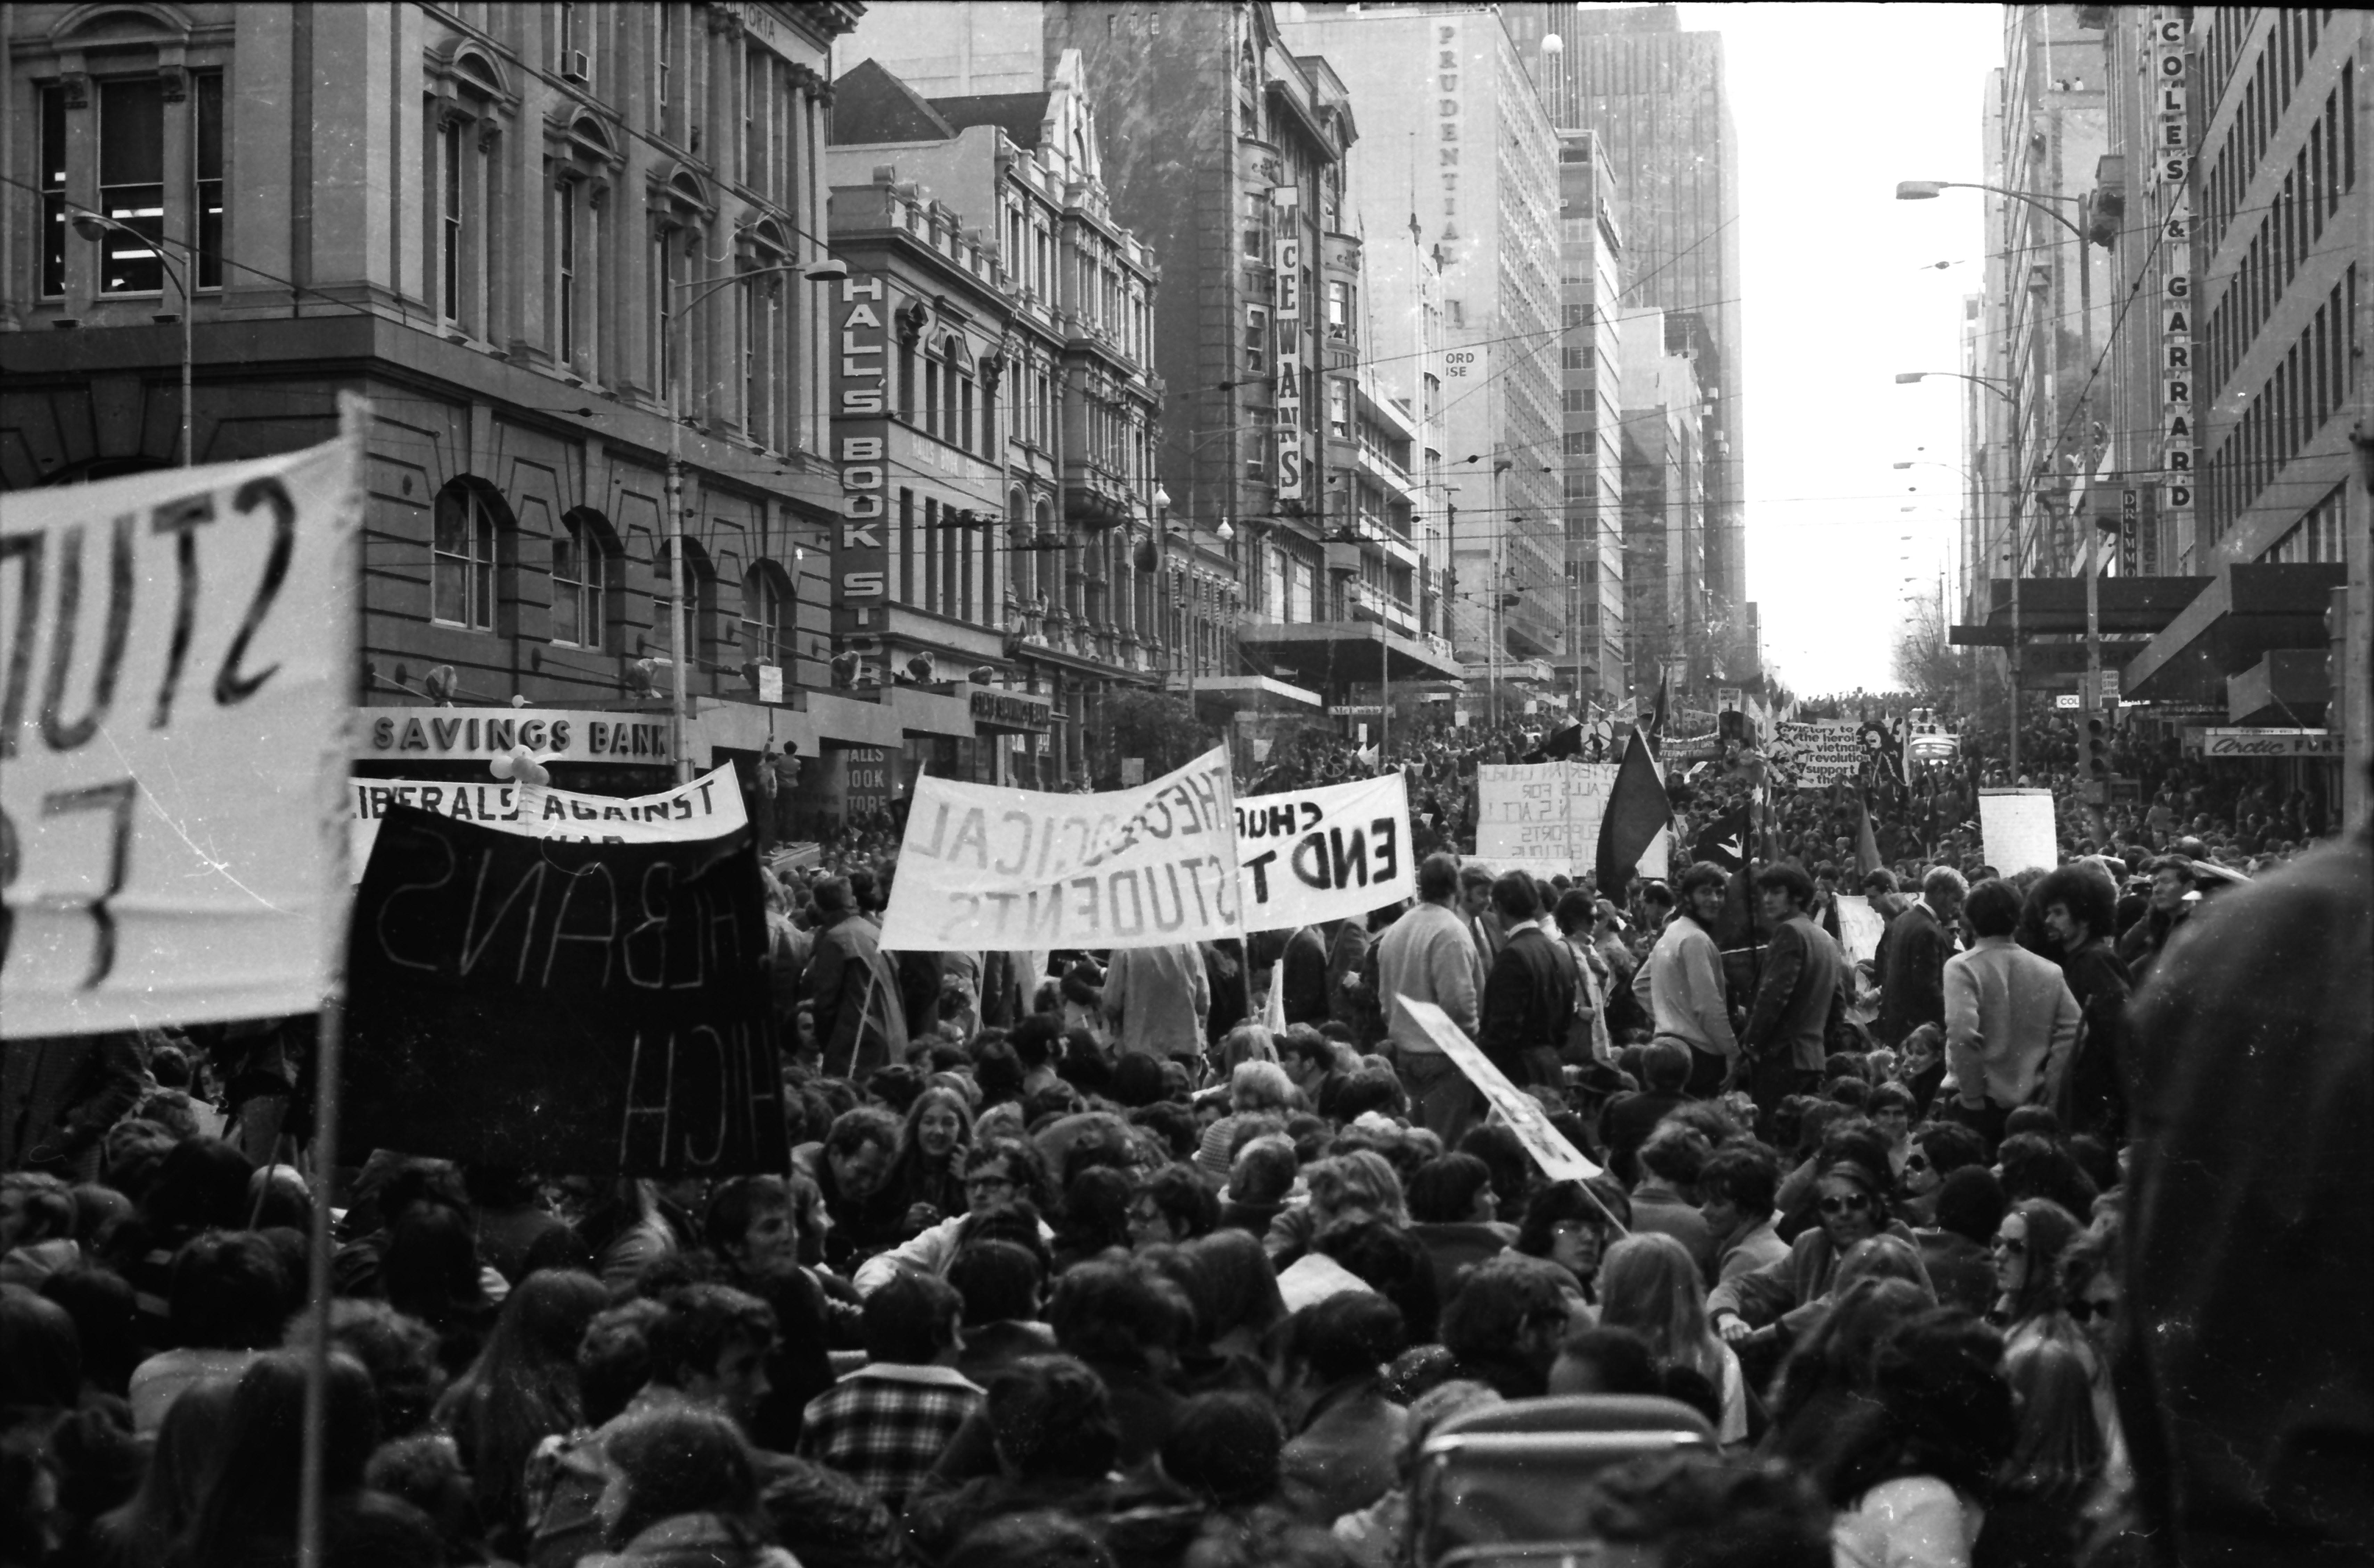 Vietnam Moratorium, corner of Elizabeth and Bourke streets, Melbourne, May 1970.